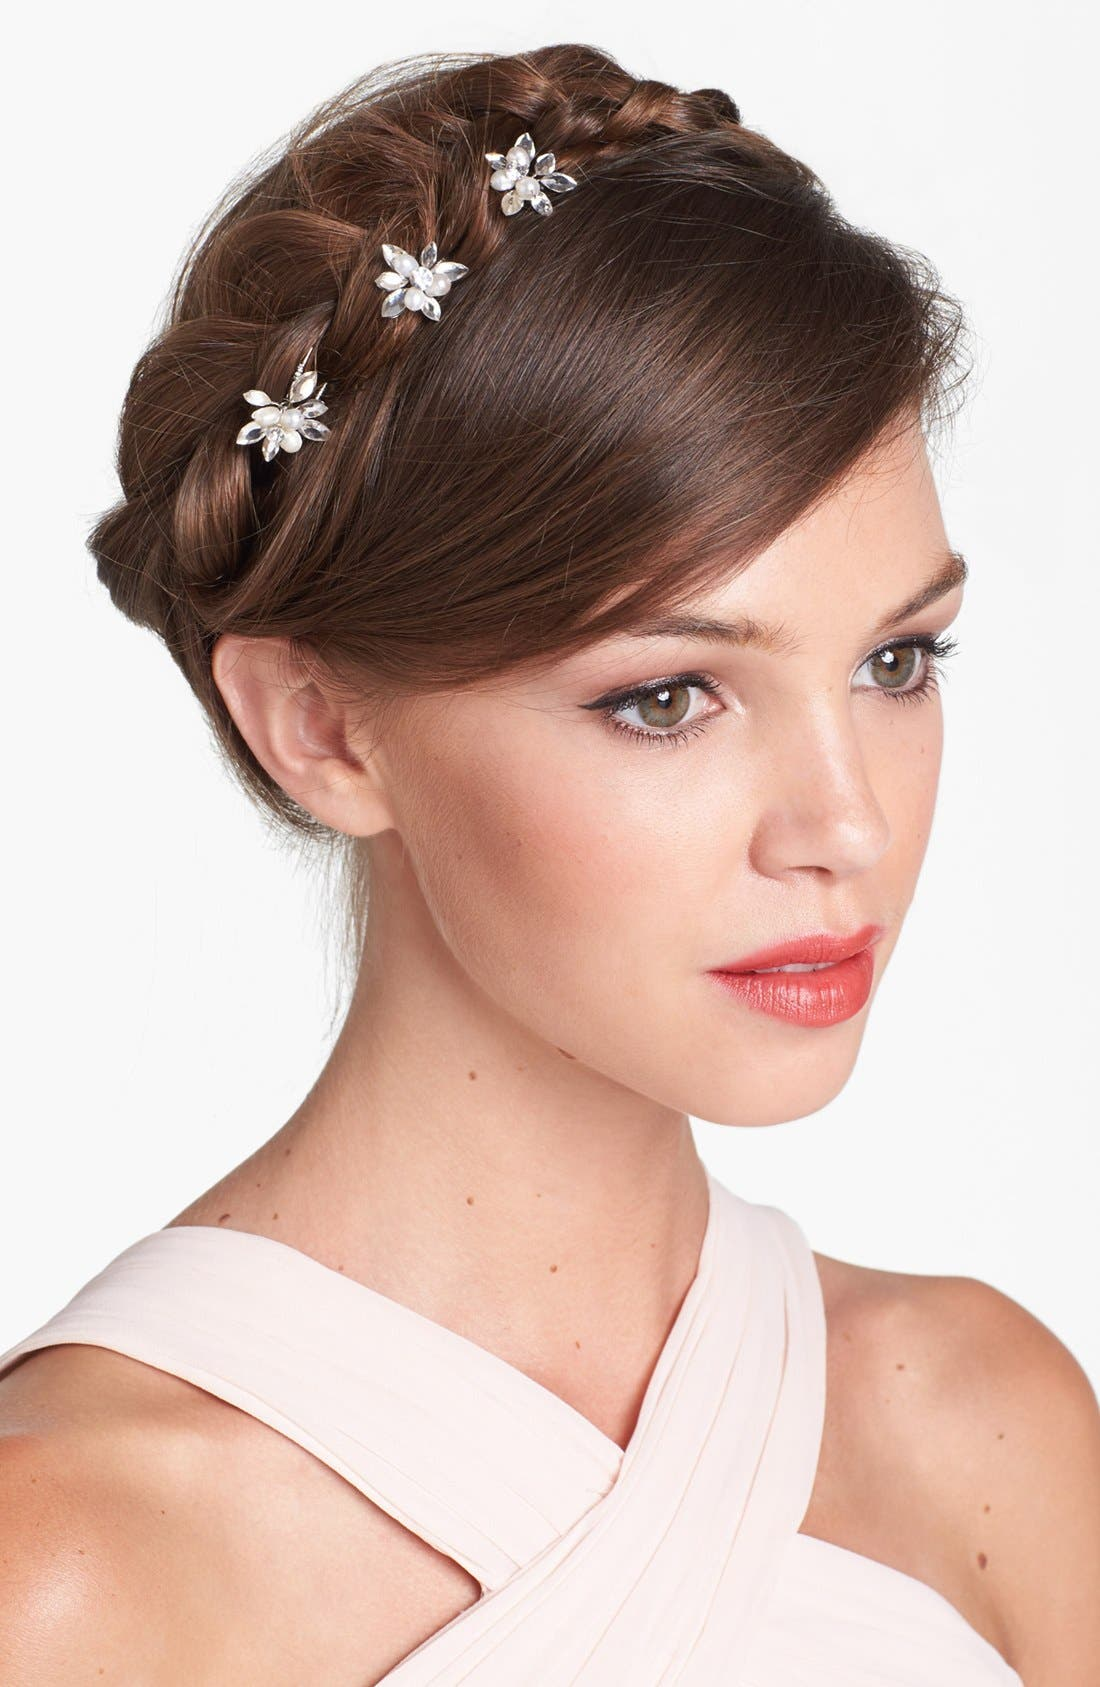 Main Image - Untamed Petals by Amanda Judge 'Kyle' Hairpins (Set of 3)